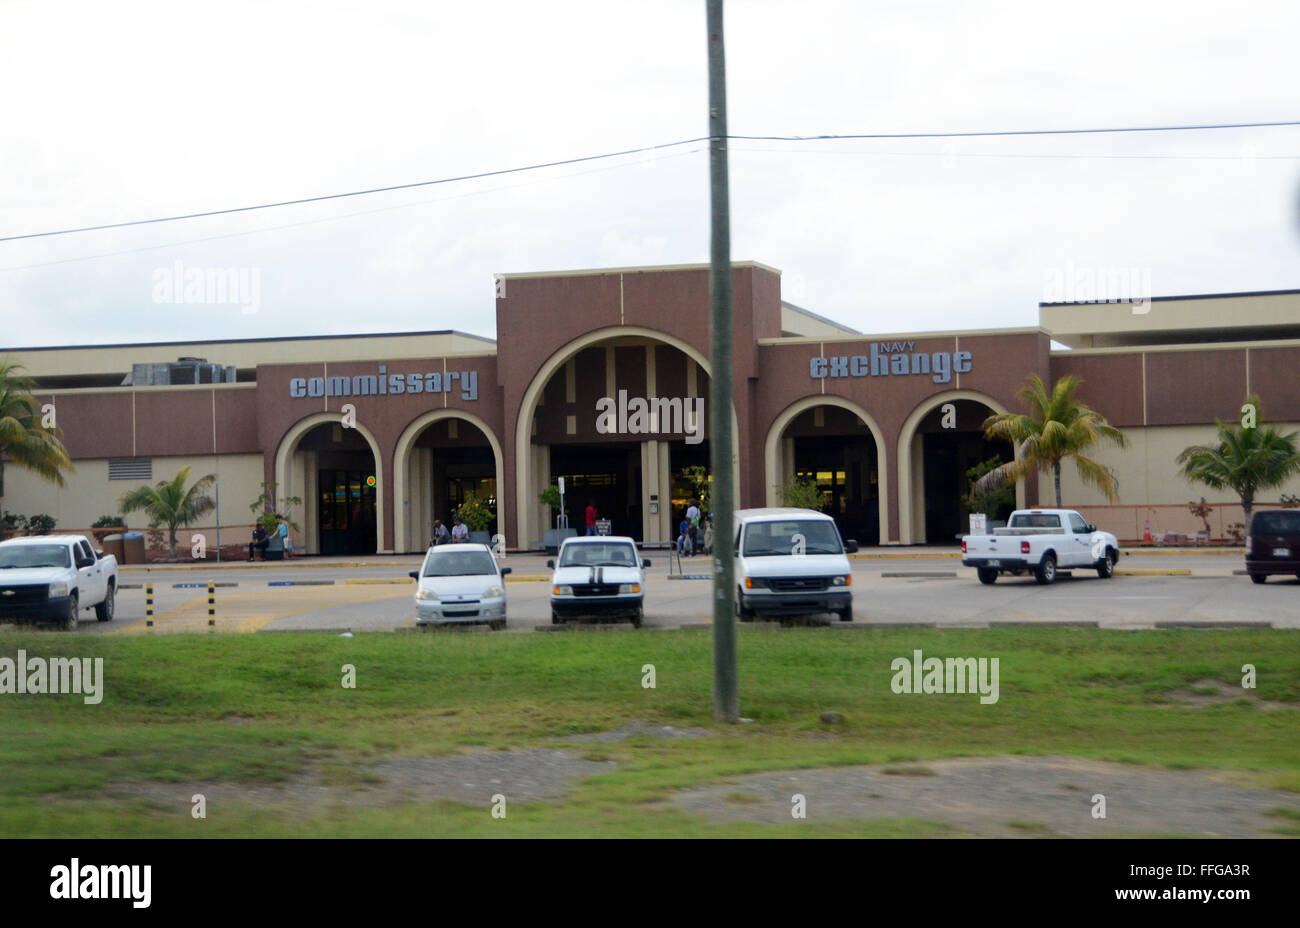 commissary stock photos commissary stock images alamy guantanamo bay gtmo nex shopping mall commissary exchange stock image